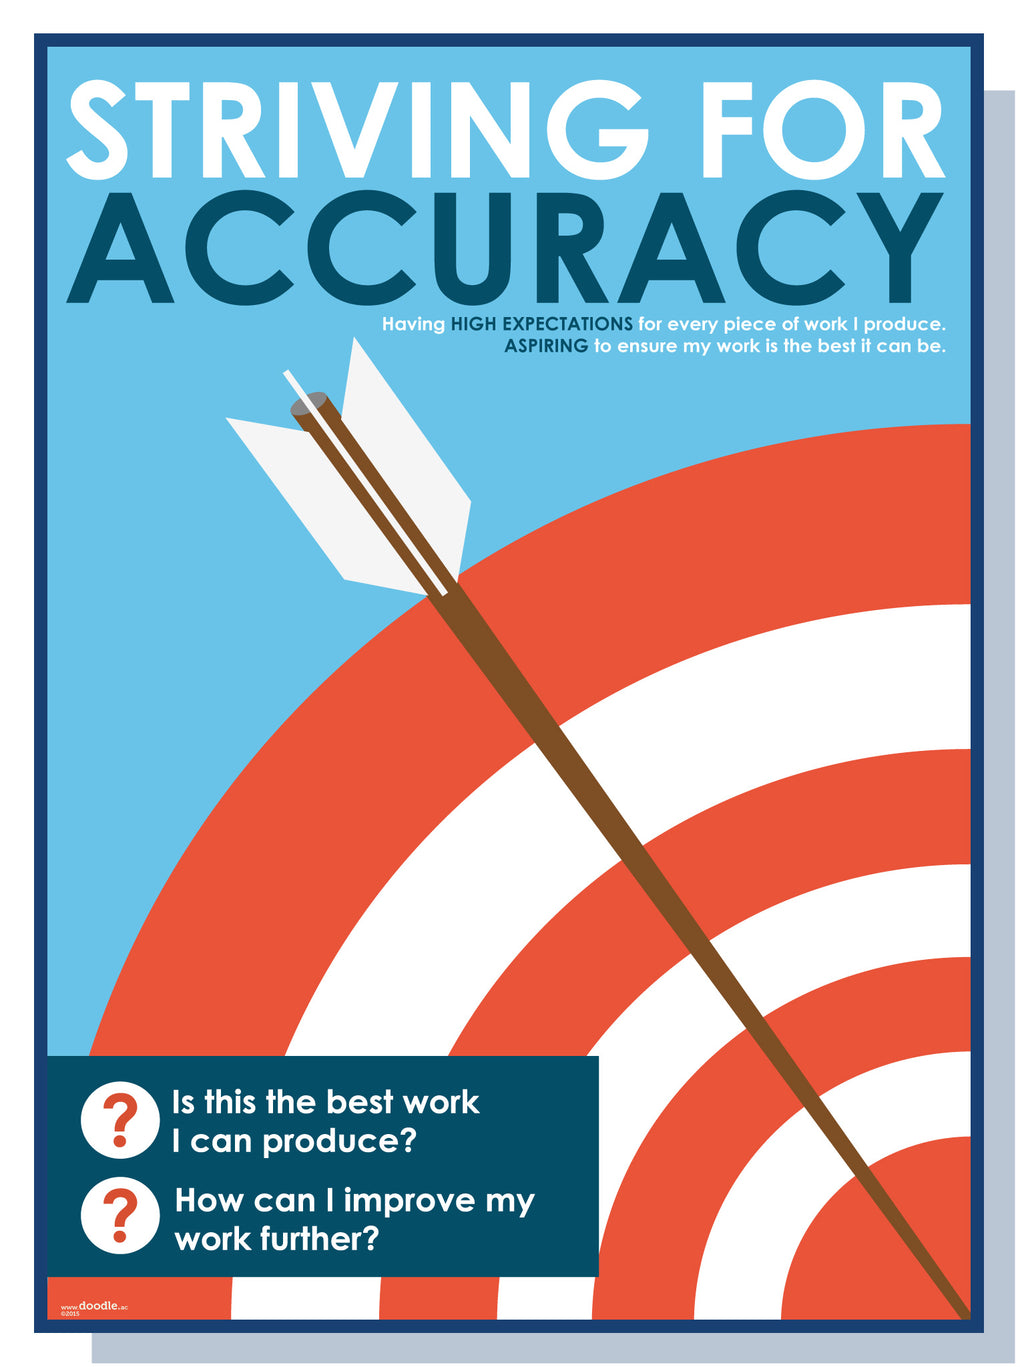 We are striving for accuracy